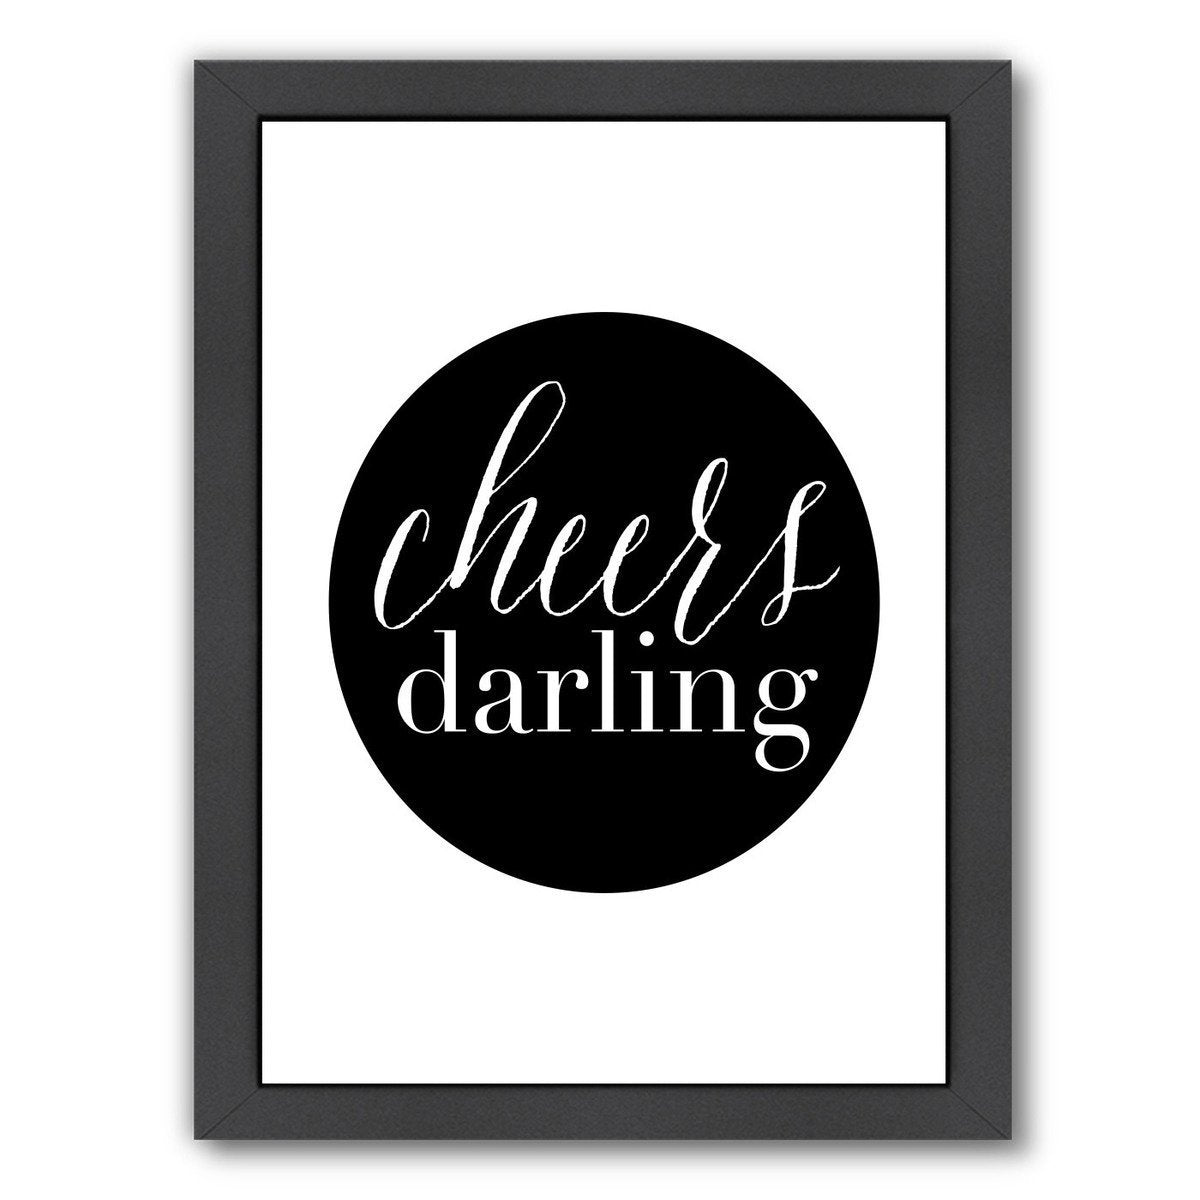 Cheers Darling by Amy Brinkman Framed Print - Wall Art - Americanflat